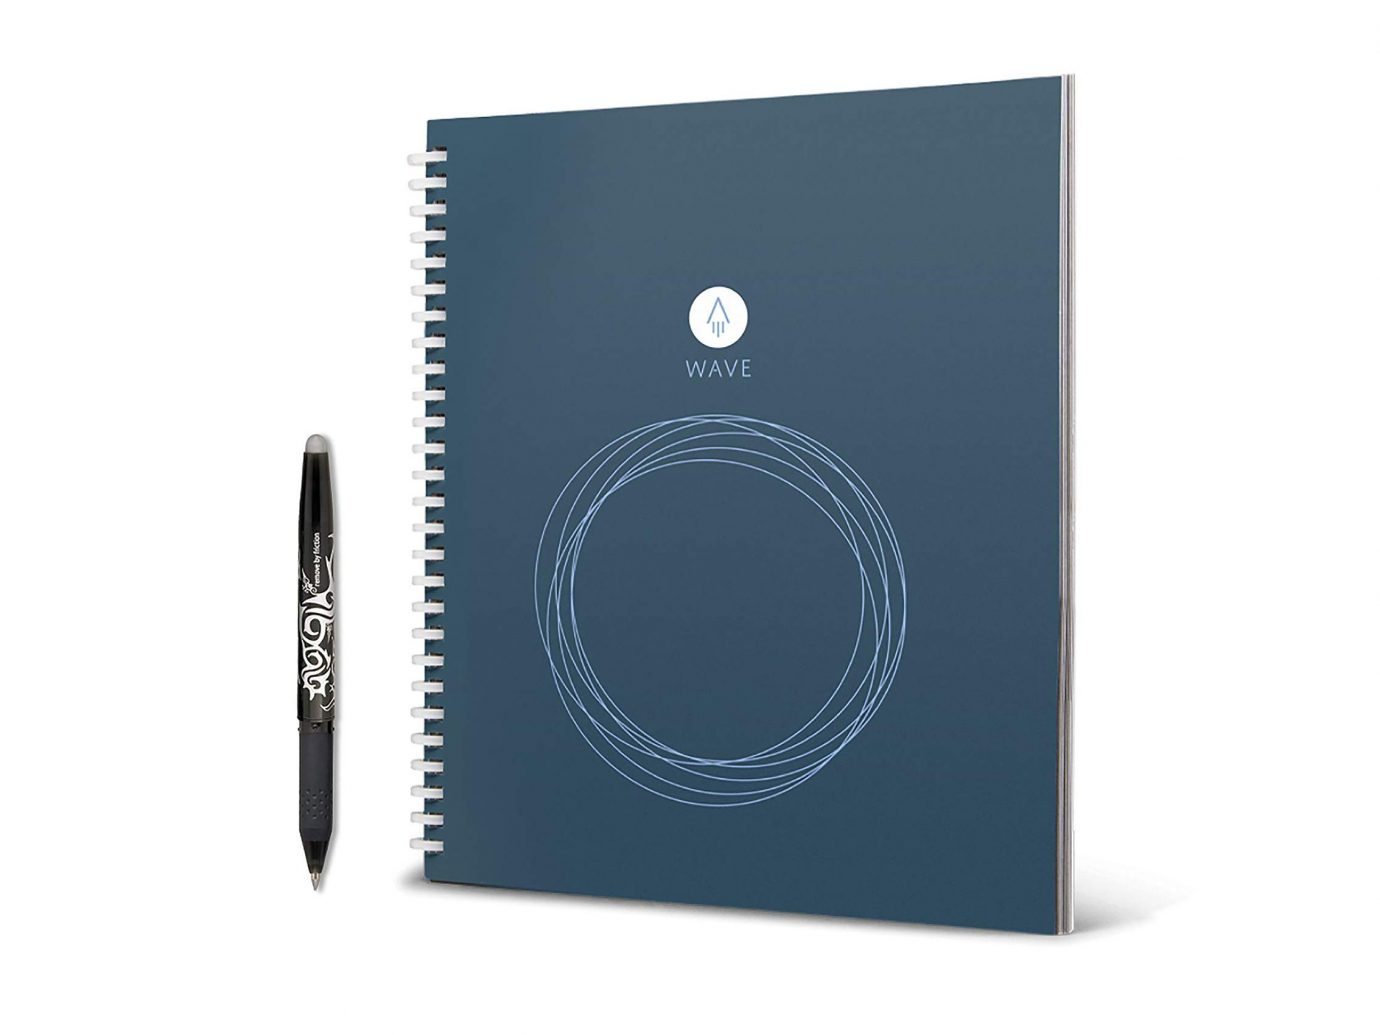 Rocketbook Wave Smart Notebook on Amazon